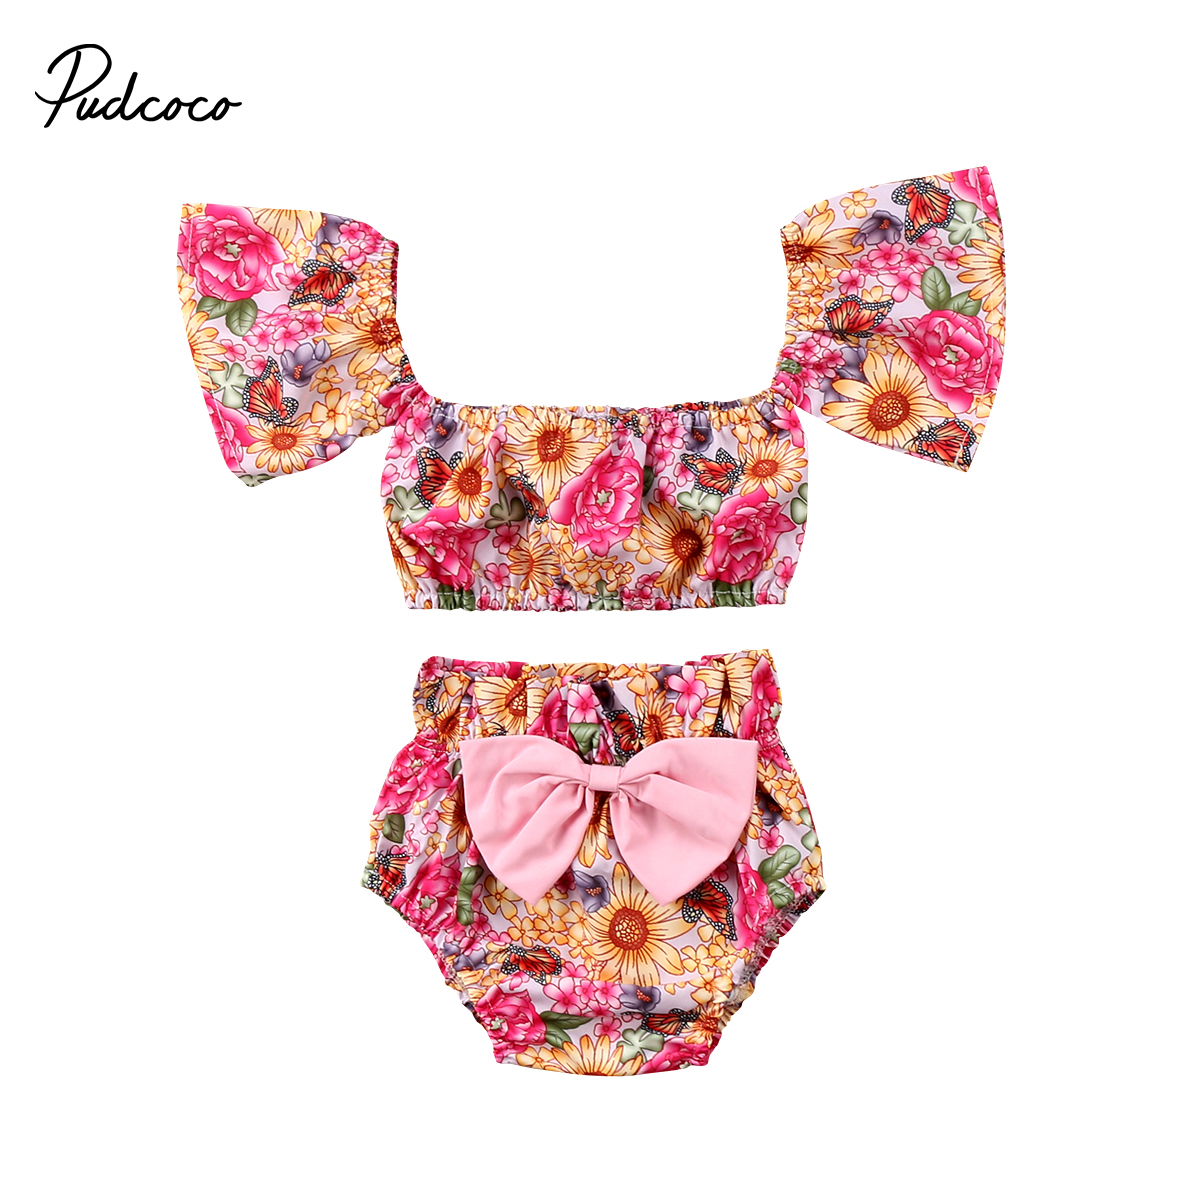 Pudcoco 2Pcs Toddler Baby Girl Floral Outfits T-shirt Vest Tops Floral Pants Summer Clothes Set